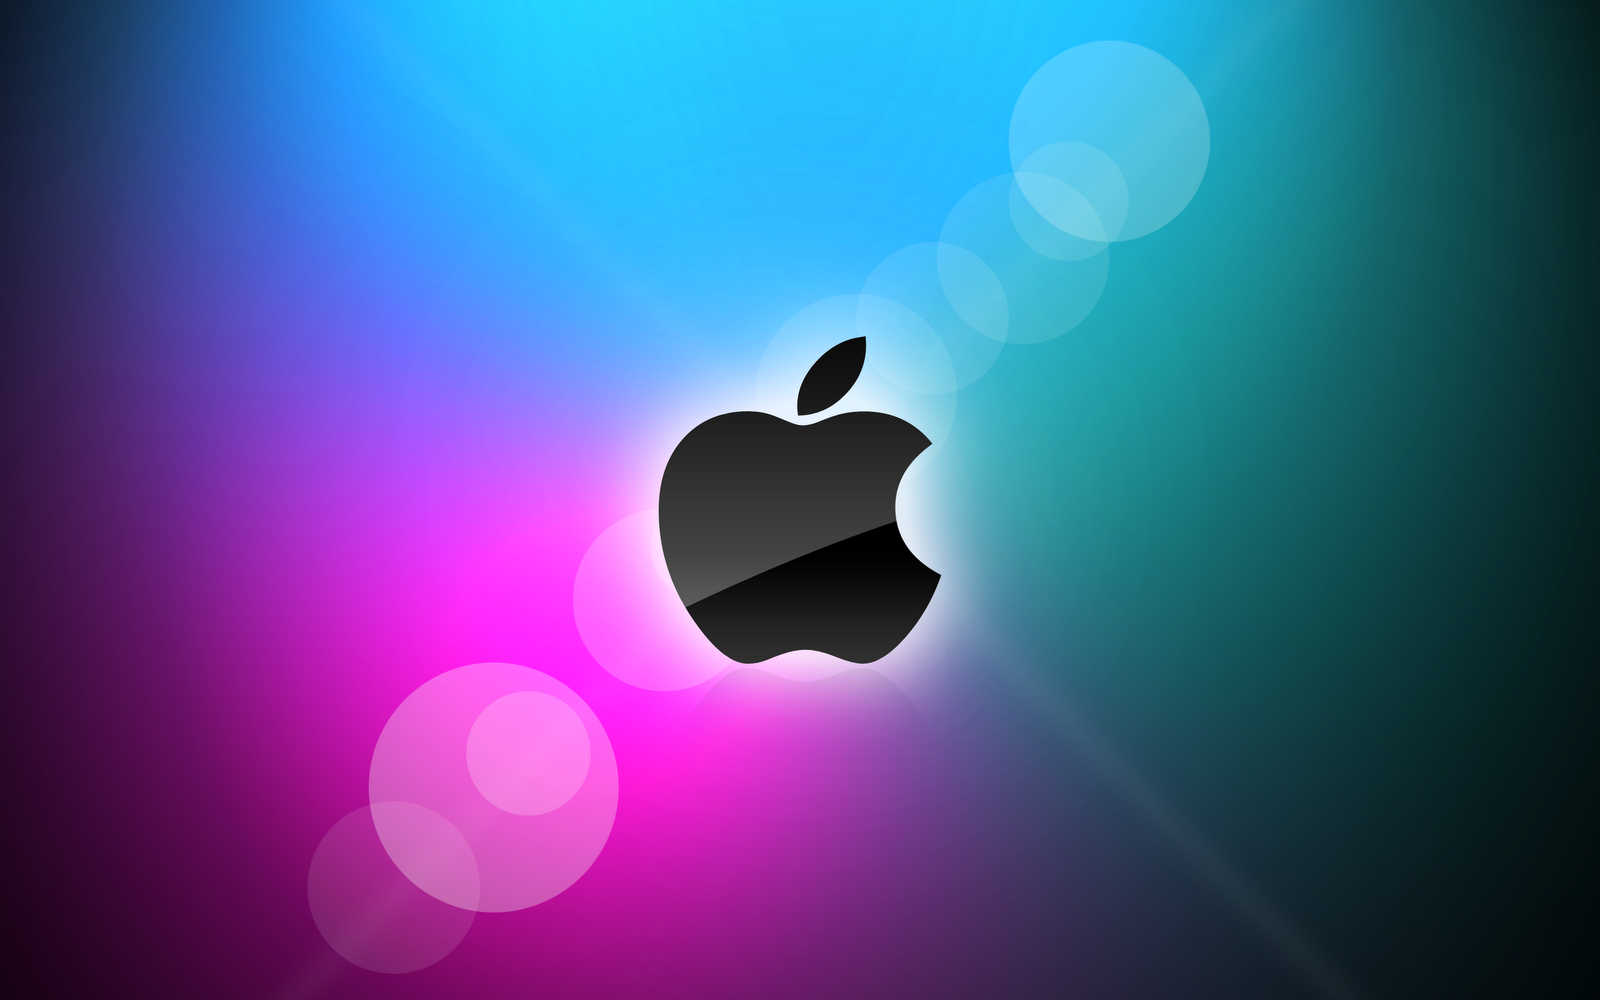 apple mac abstract 3d wallpapers hd awesome wallpapers